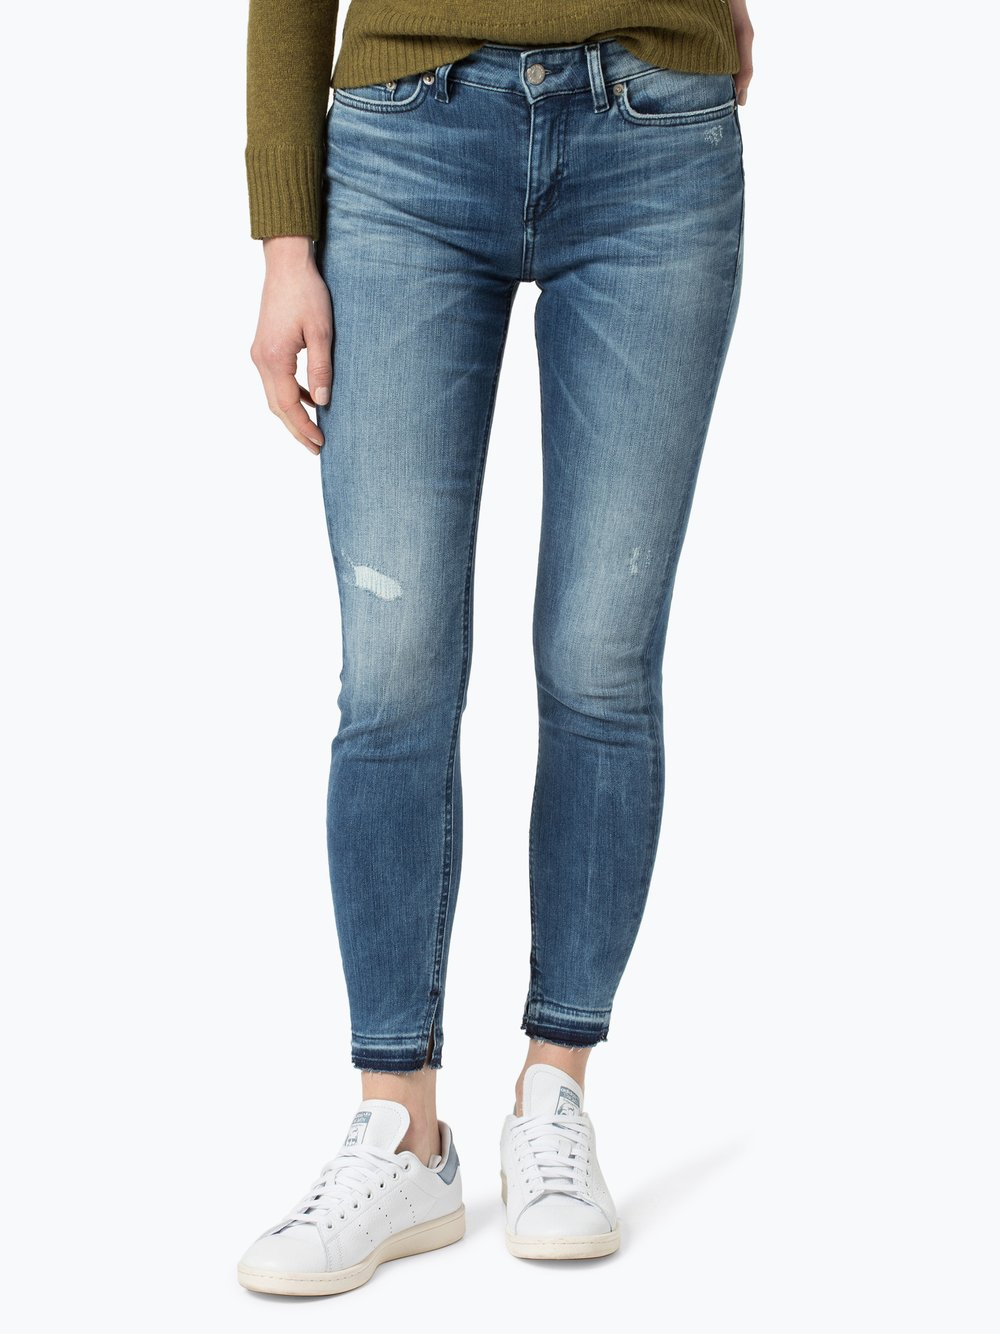 DRYKORN Damen Jeans Need in Hellblau NEU